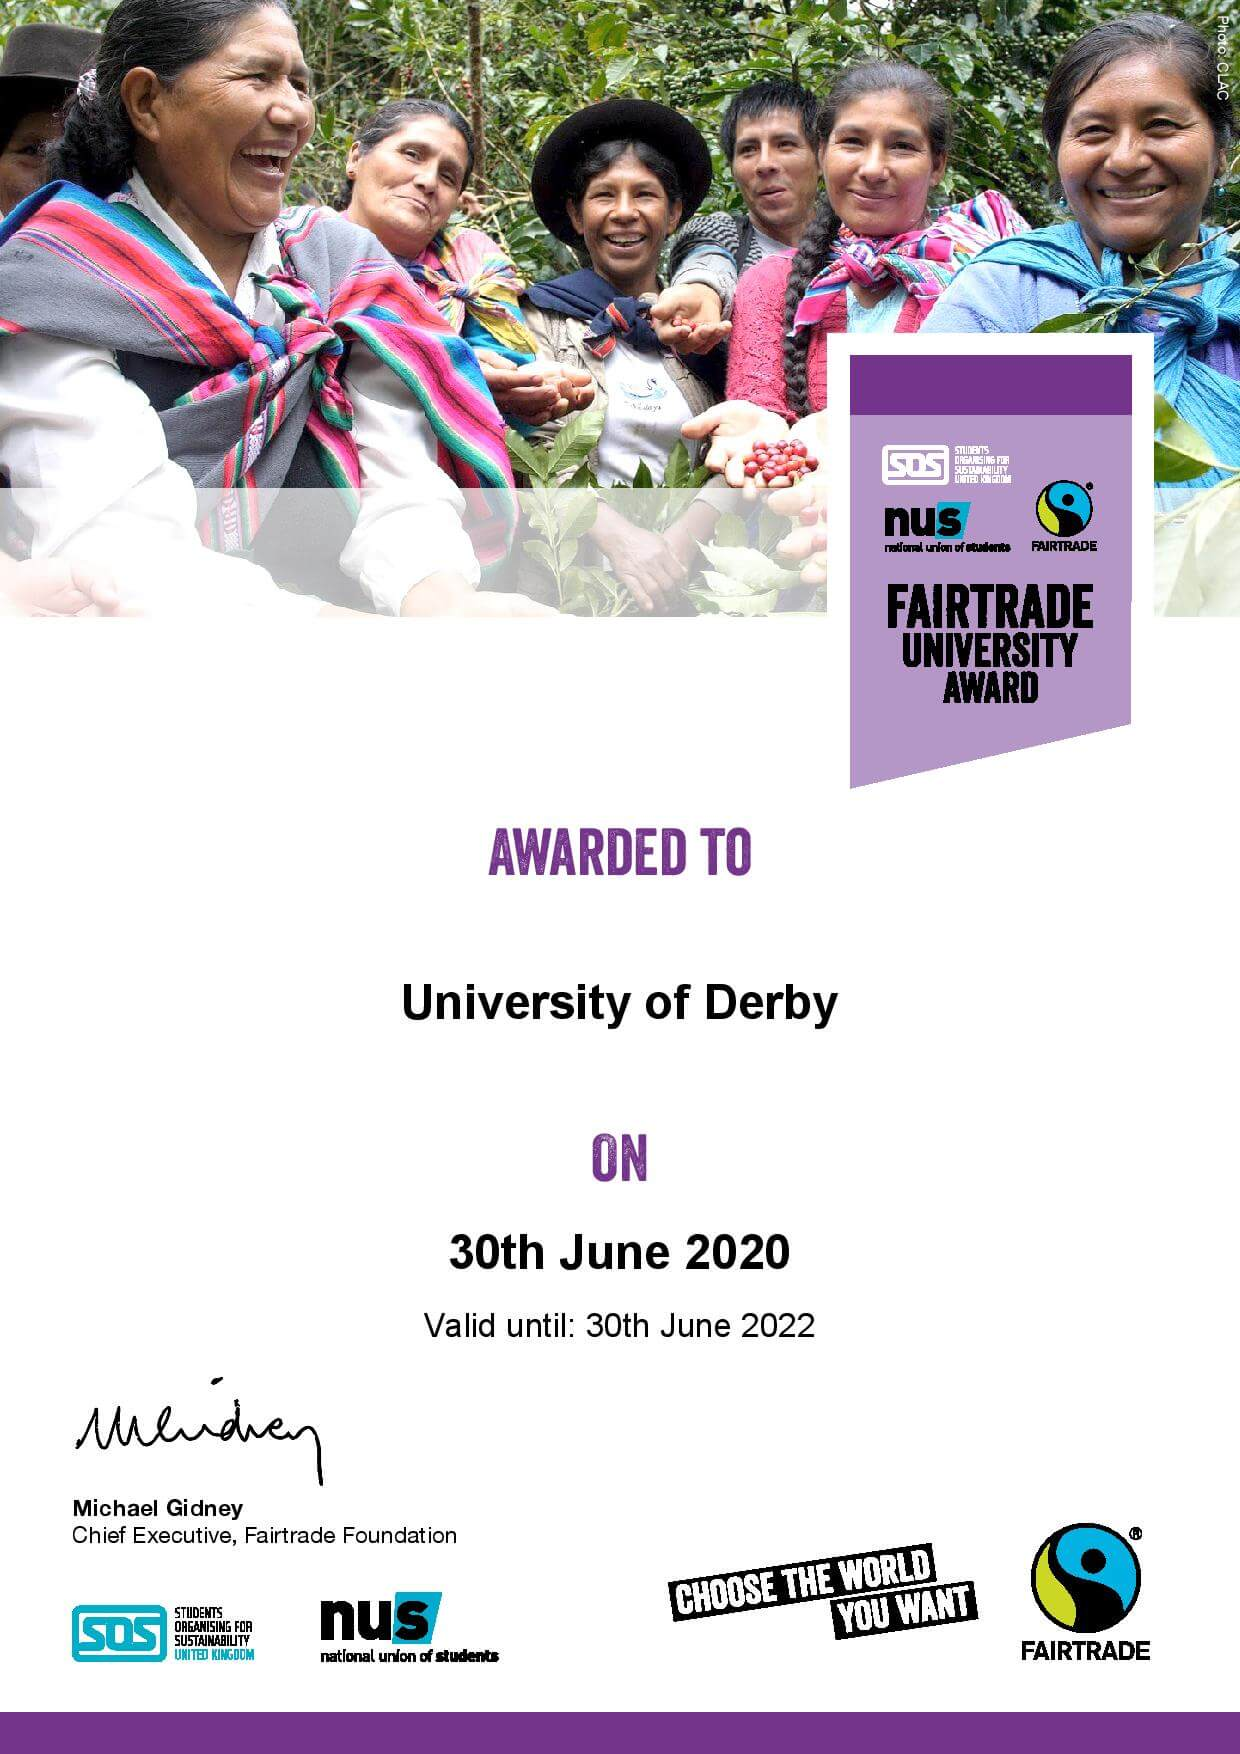 The Fairtrade University award was issued to University of Derby on the 30th June 2020